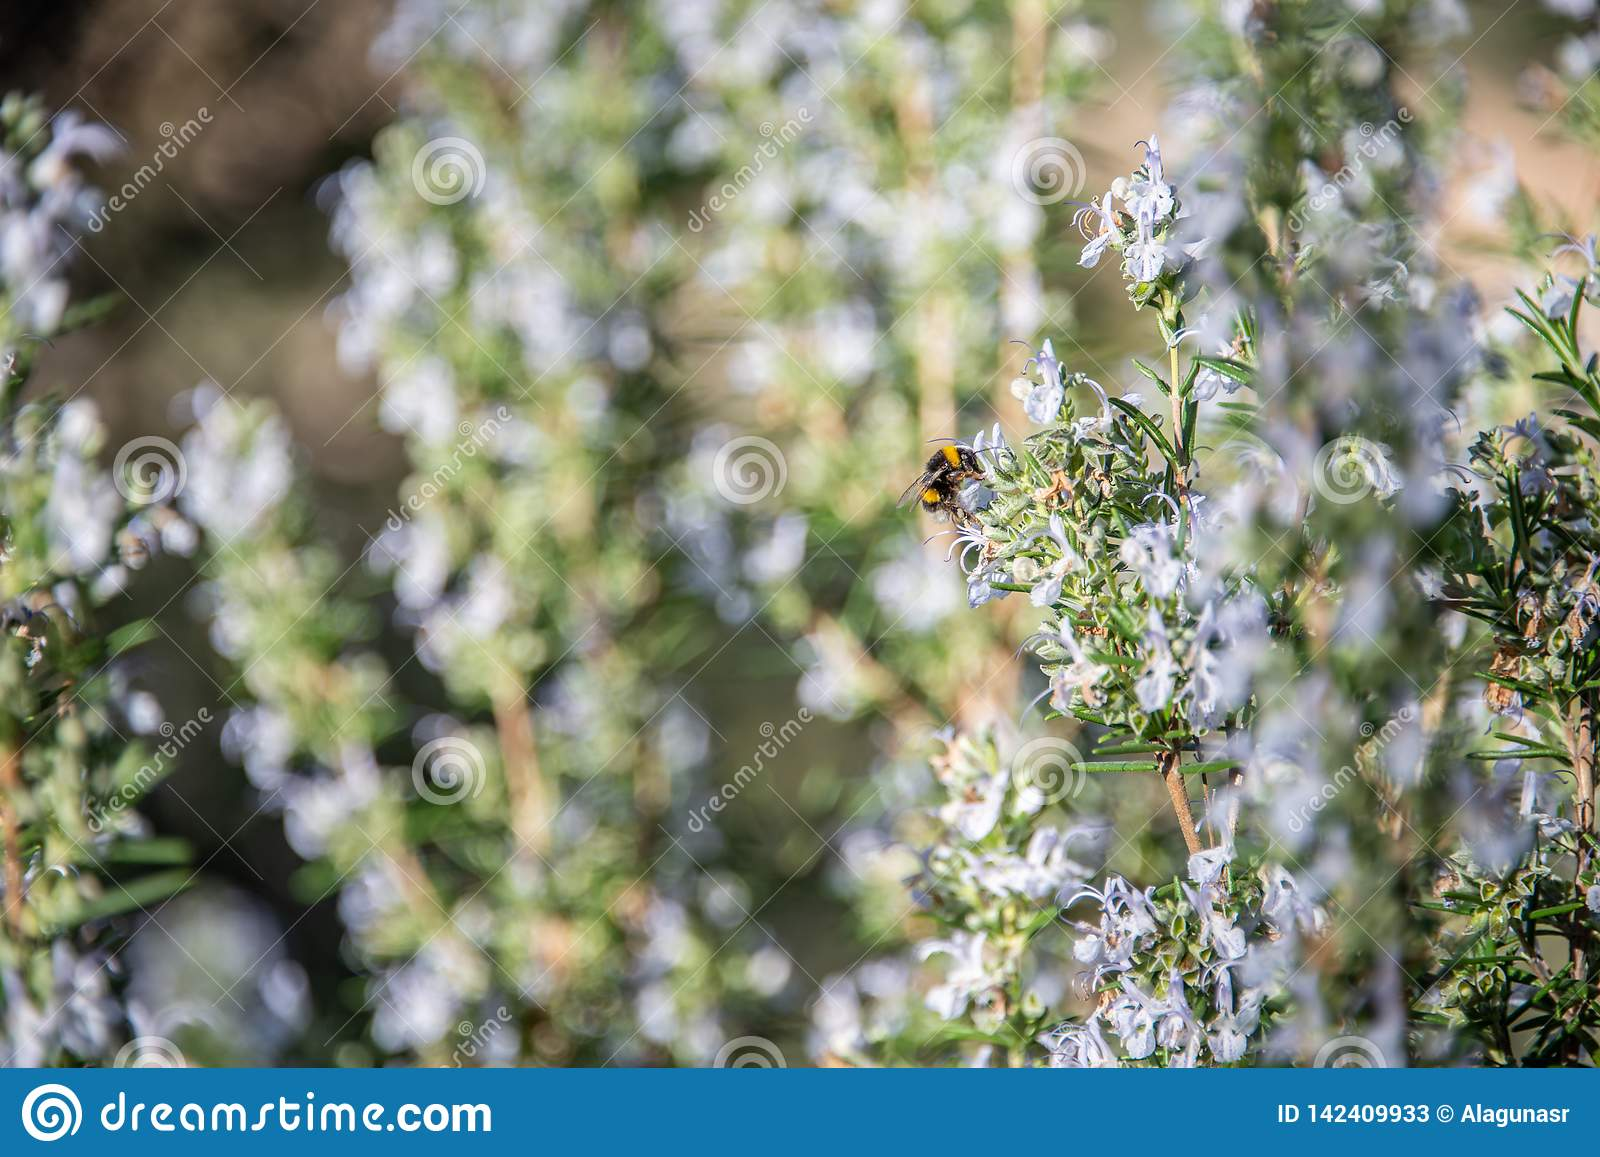 Detail of rosemary blossoms with bee